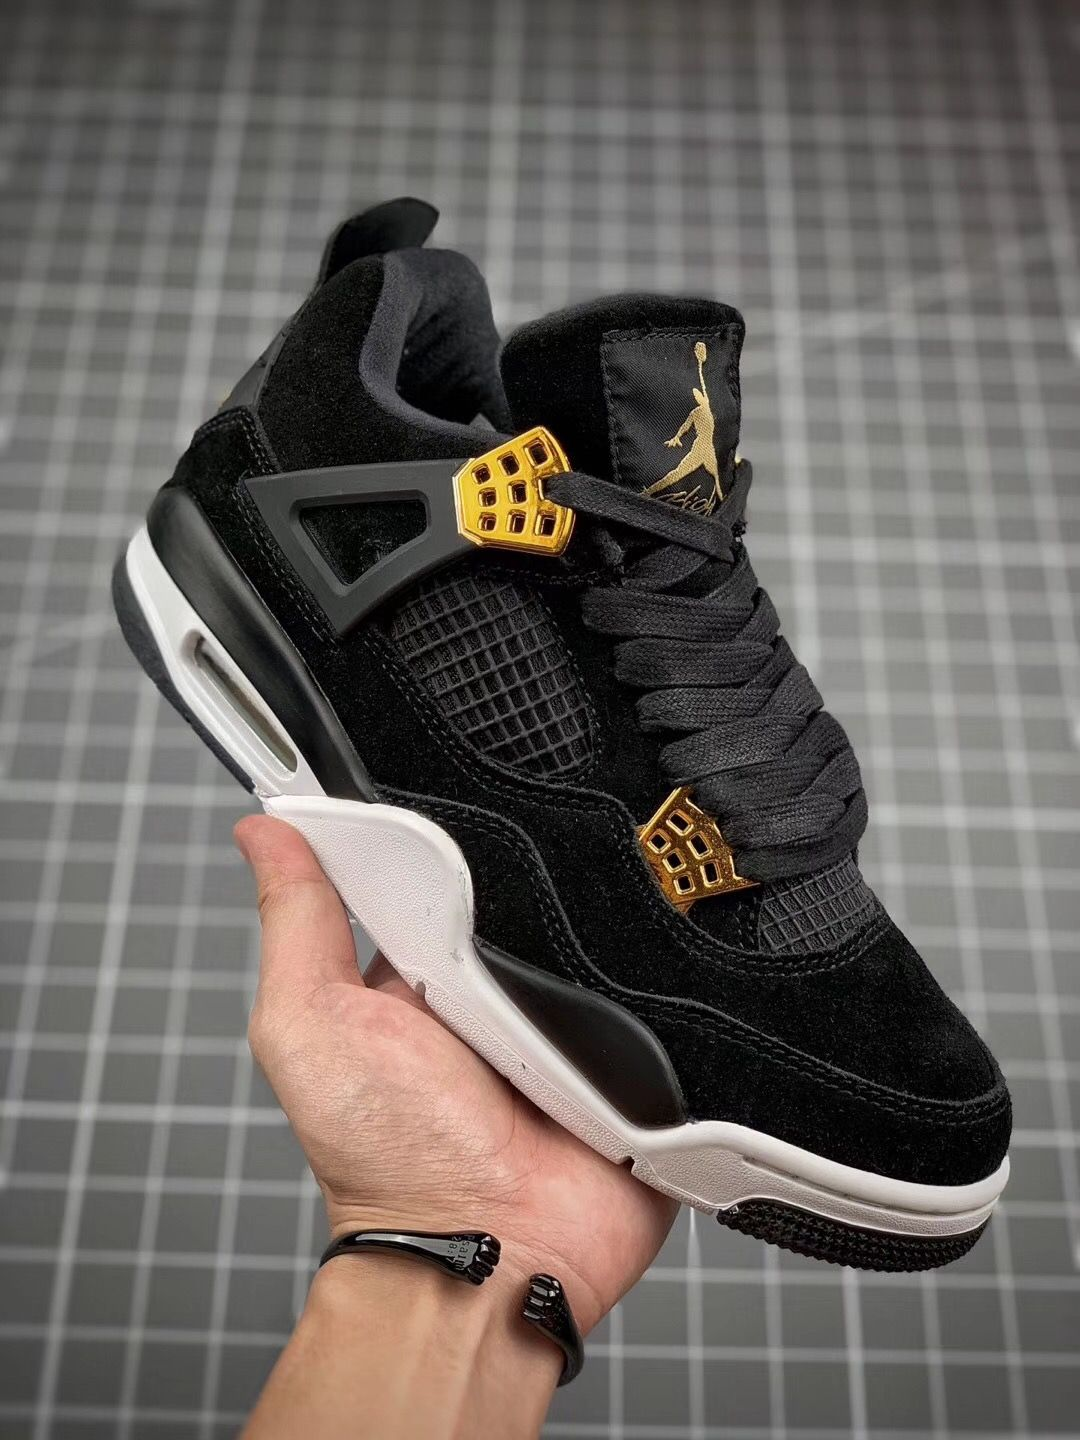 brand new 15946 6ee73 Air Jordan 4 RETRO  ROYALTY  in 2019   Shoes   Air jordans, Shoes, Air  jordan 4 royalty